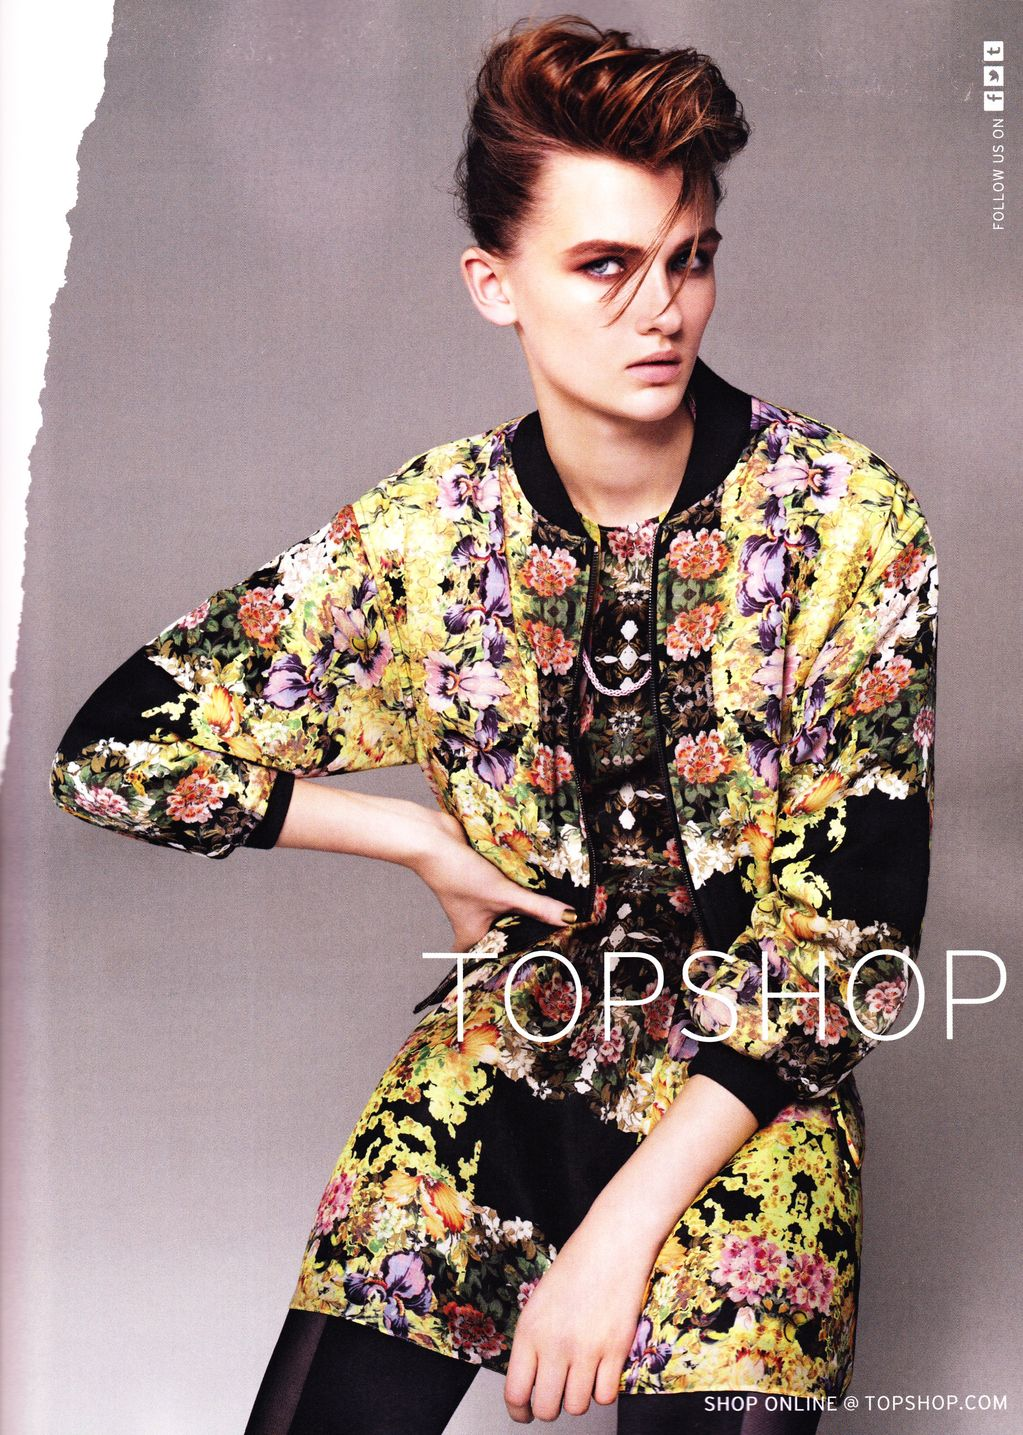 Topshop Spring Summer 2012 Ad Campaign